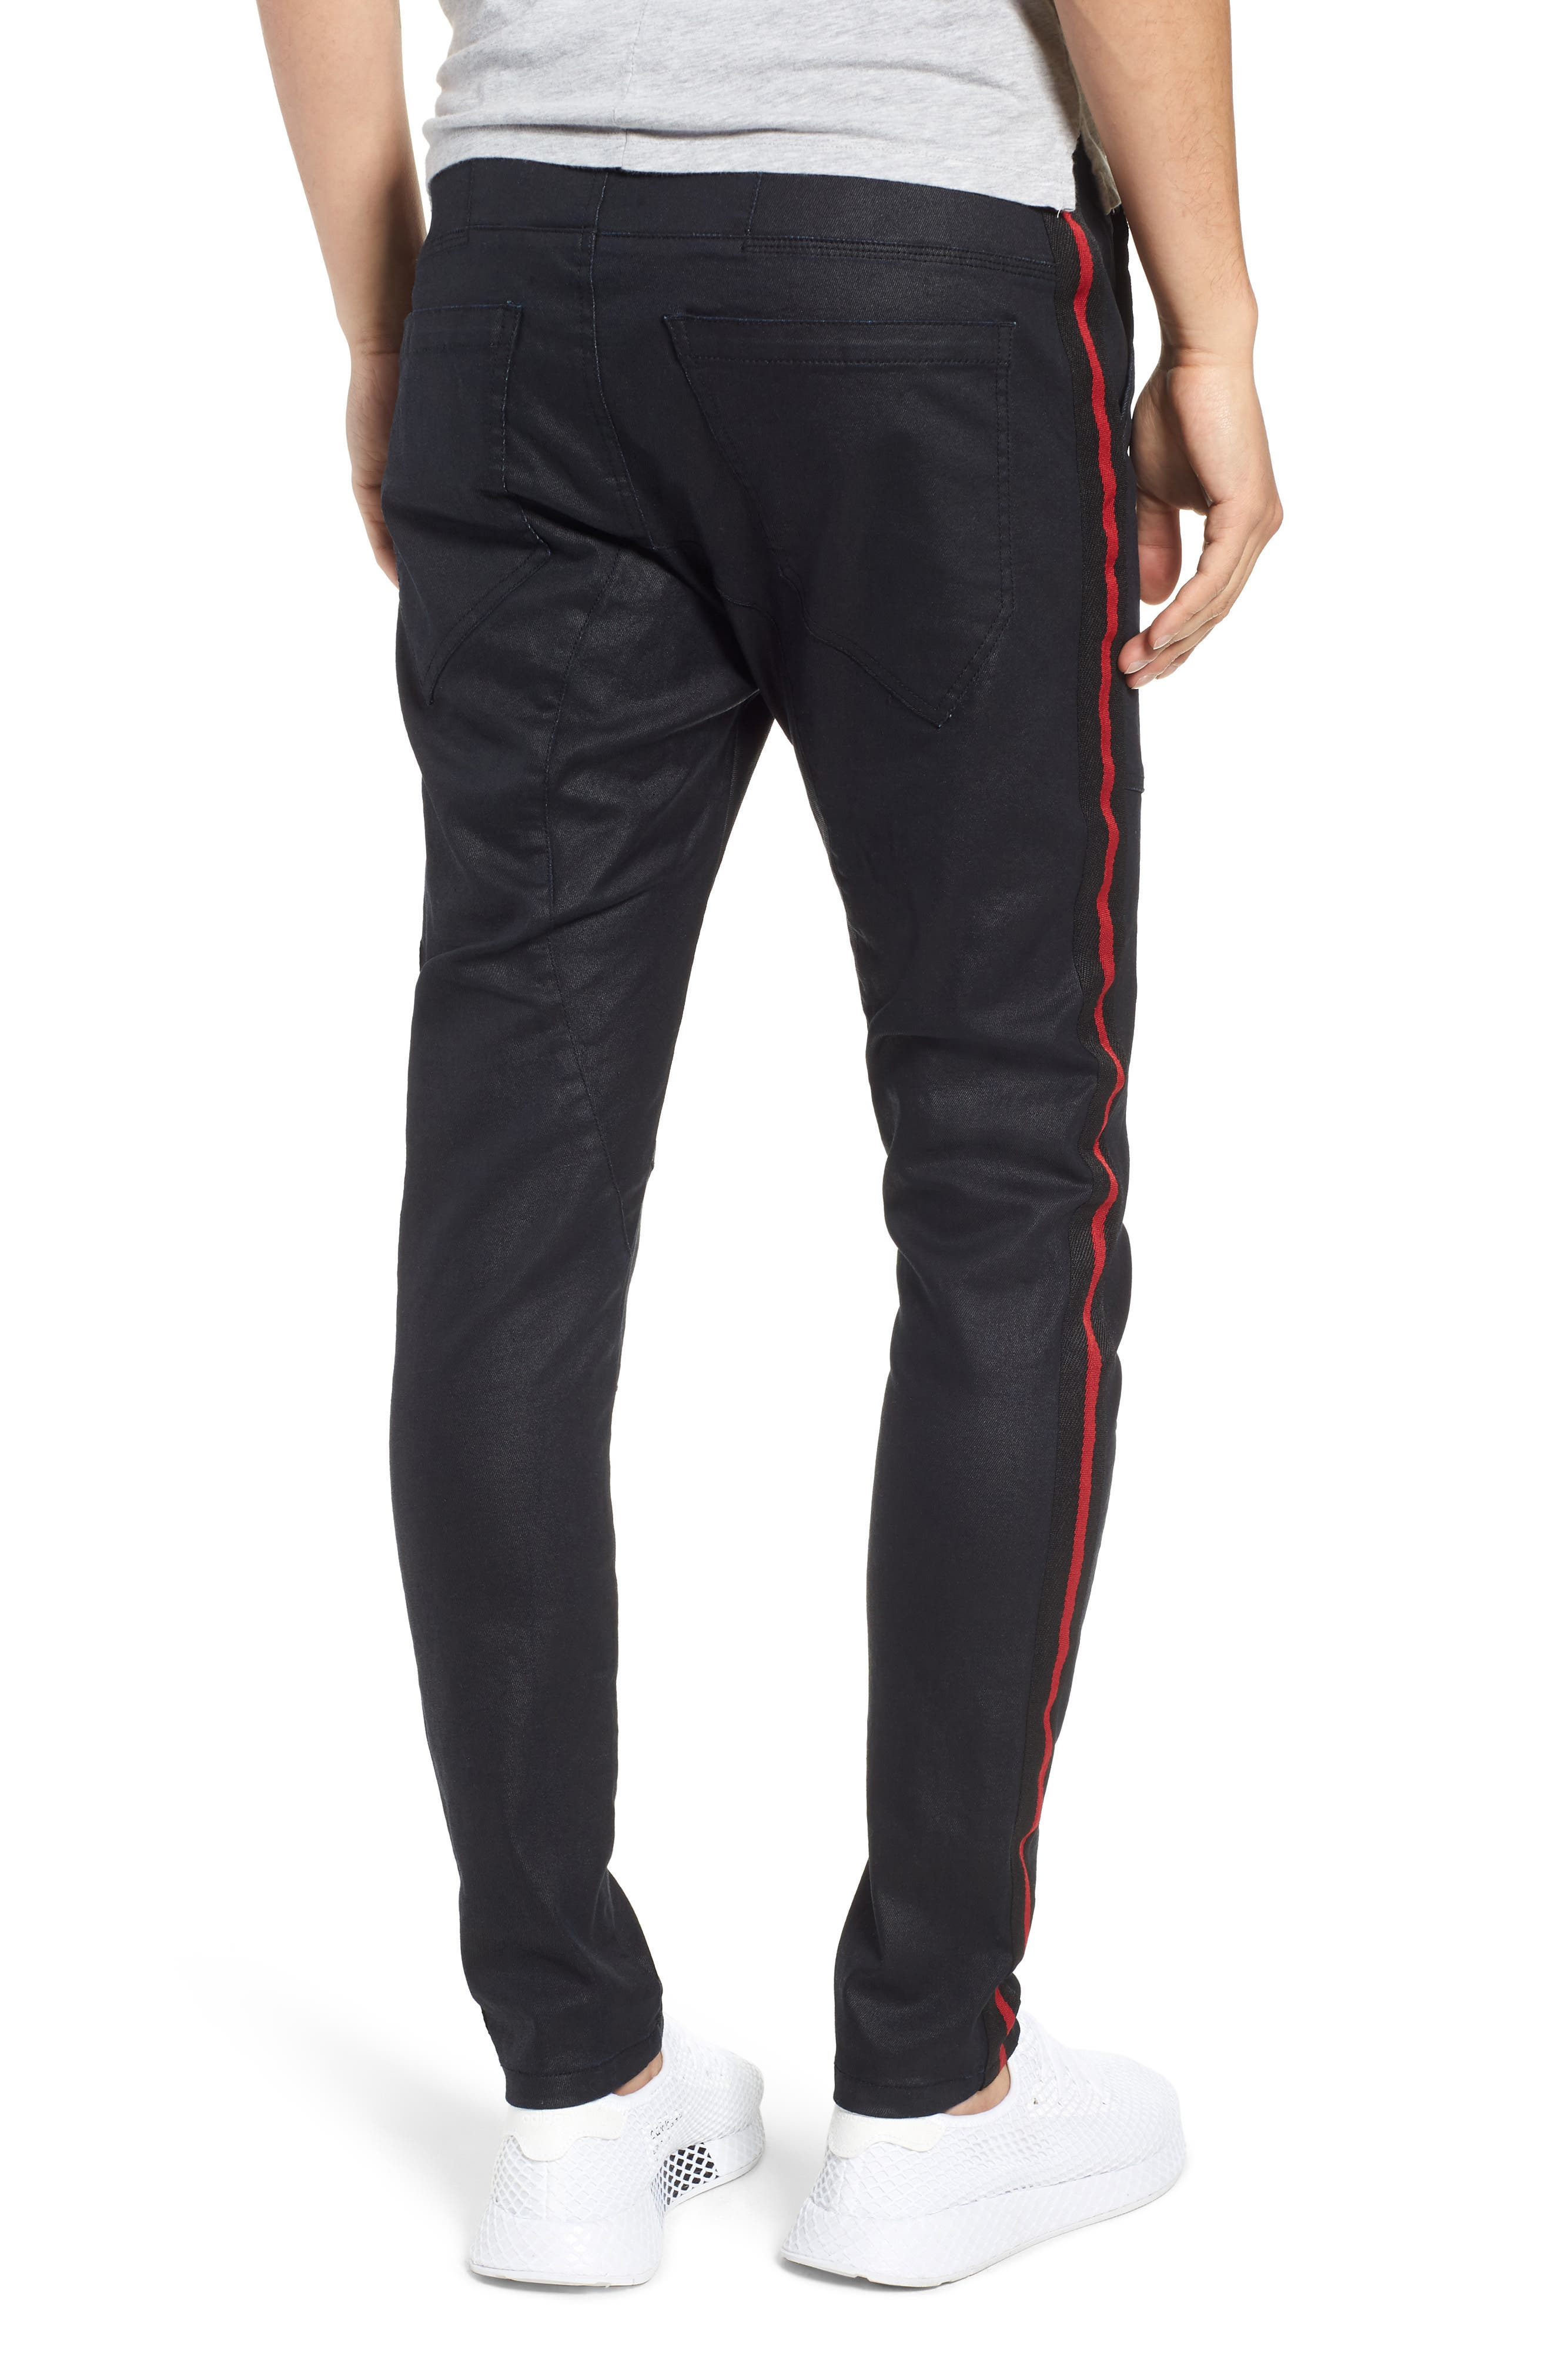 Baseline Taped Skinny Fit Jeans,                             Alternate thumbnail 2, color,                             WAX BLACK RED STRIPE